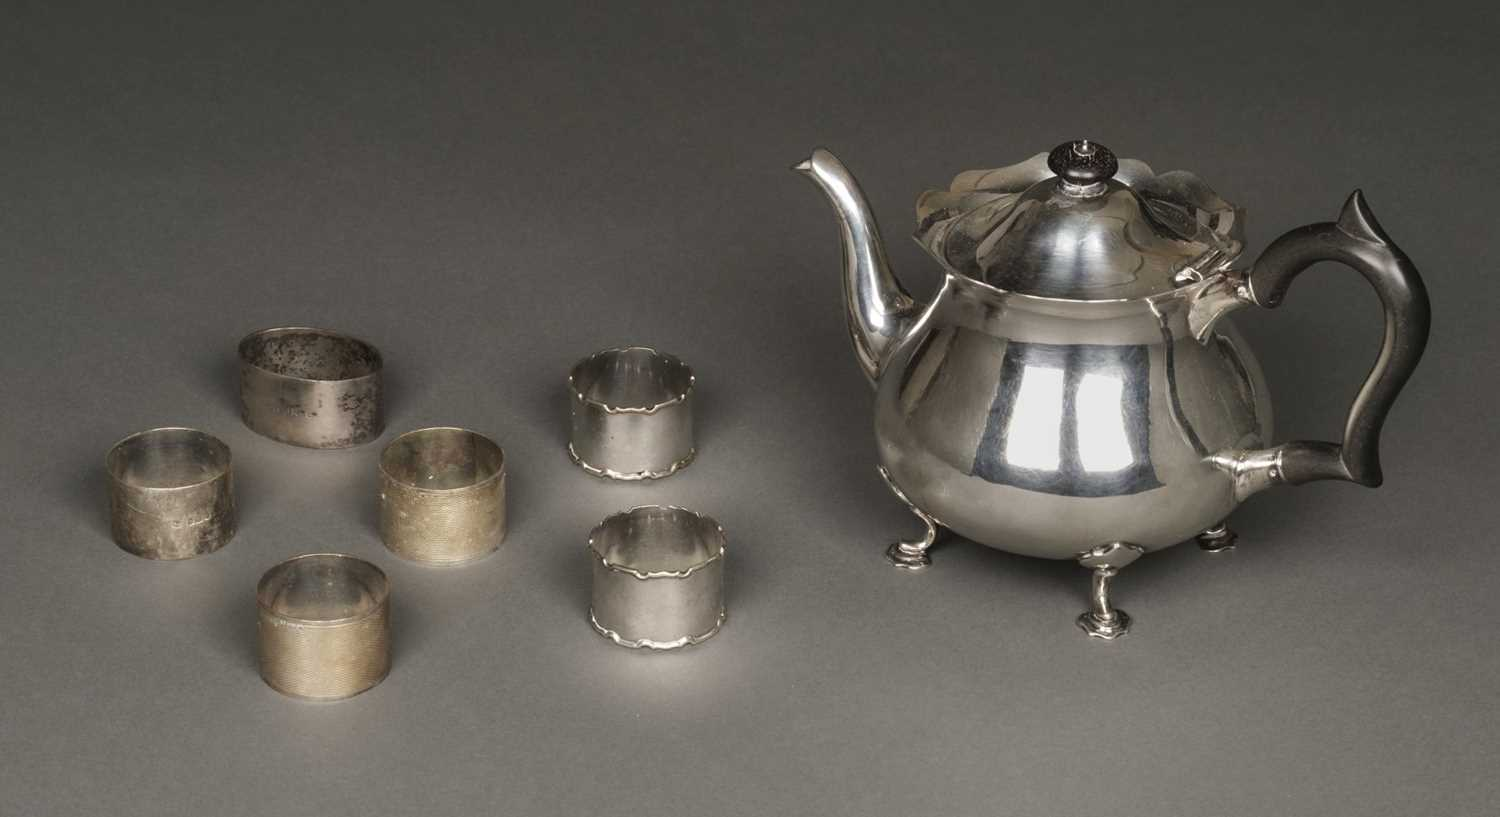 Lot 32 - Silver Teapot and other items